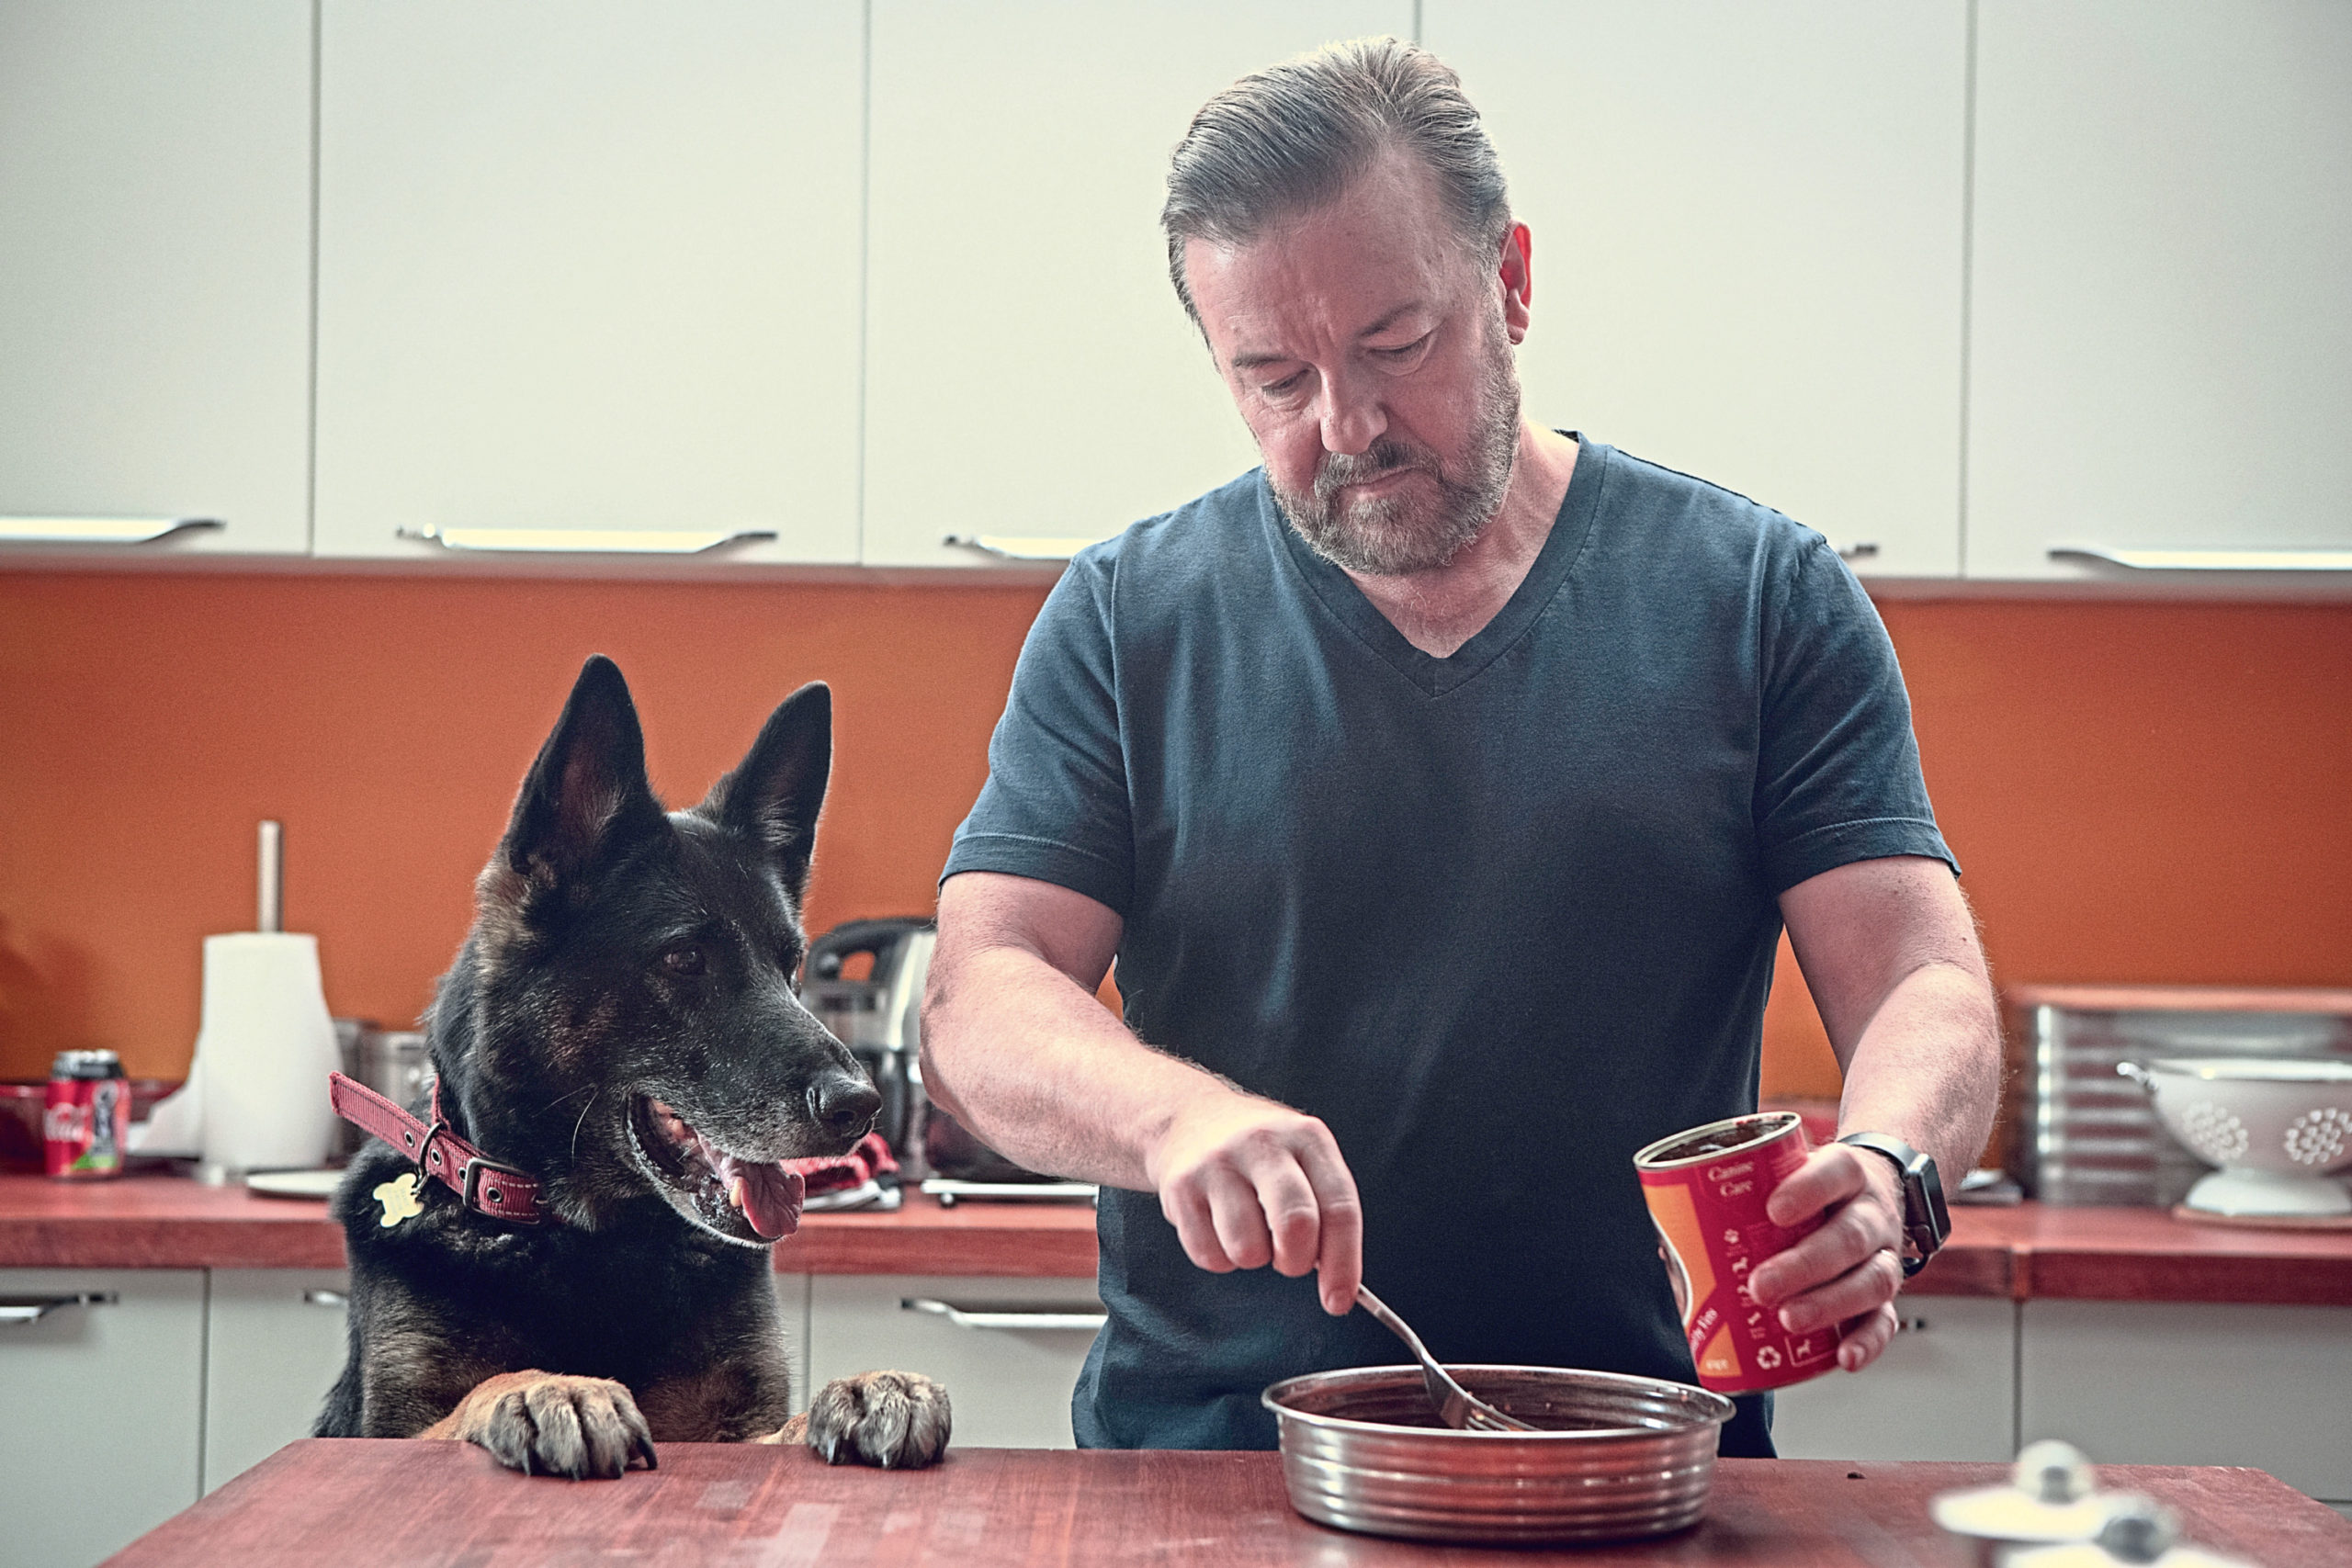 Ricky Gervais as widower Tony with beloved German Shepherd Brandy in After Life season two